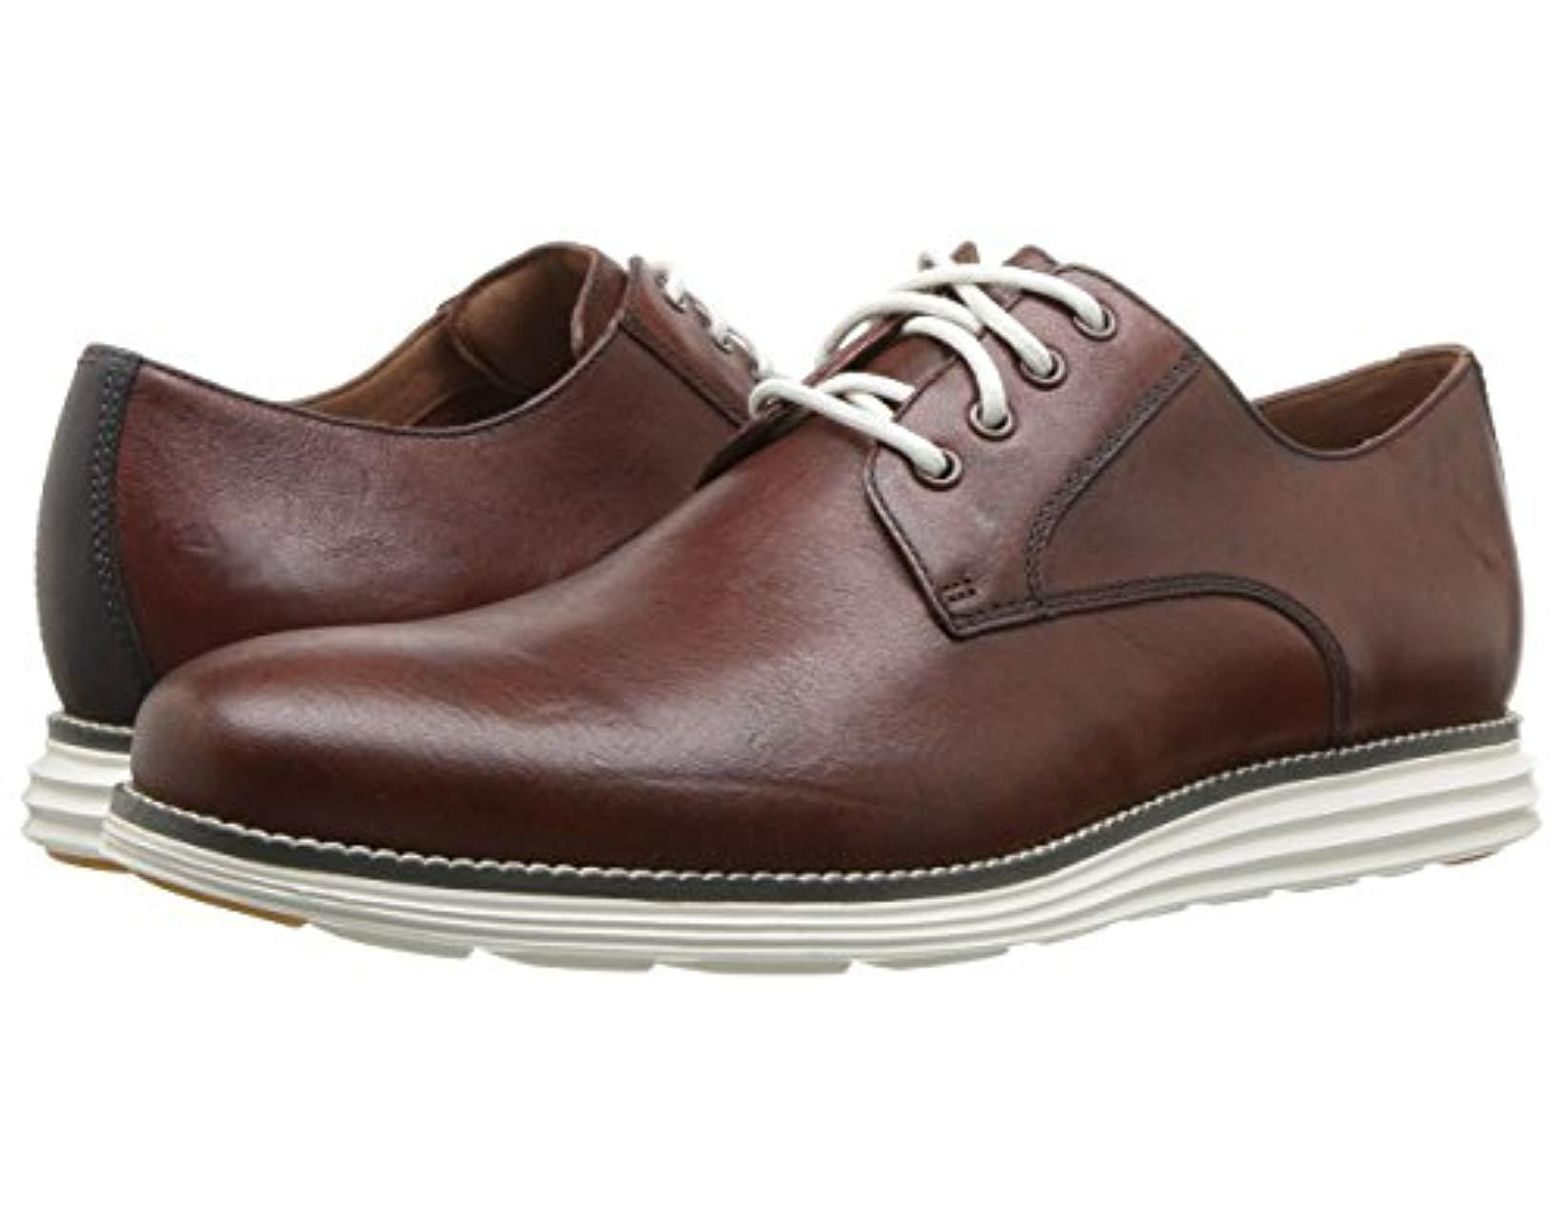 ab834ffa5b Cole Haan Original Grand Plain Toe (woodbury/magnet/wheat) Shoes in Brown  for Men - Save 43% - Lyst